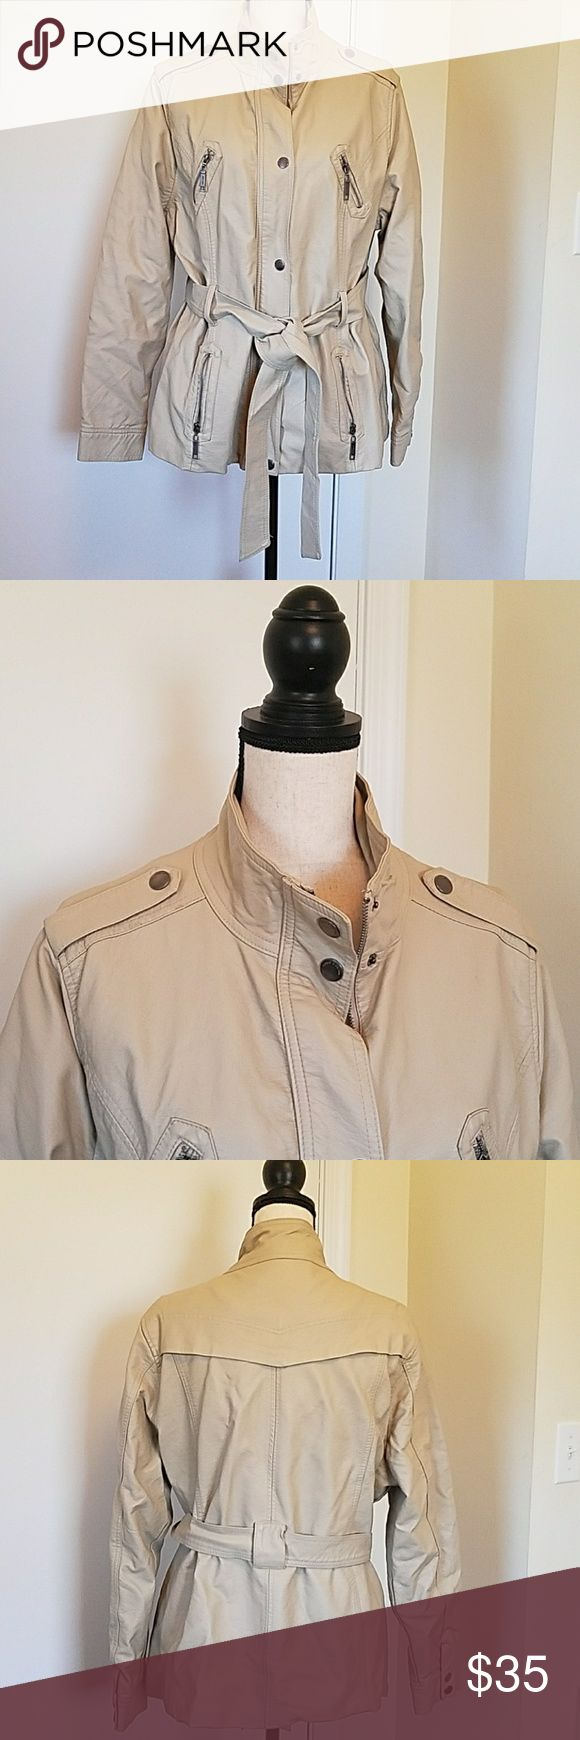 Jou Jou Faux Leather Belted Plus Jacket size 2X Great neutral beige color that will go with everything.   Belt ties at waist...lots if pockets, too!  Excellent condition. Jou Jou Jackets & Coats